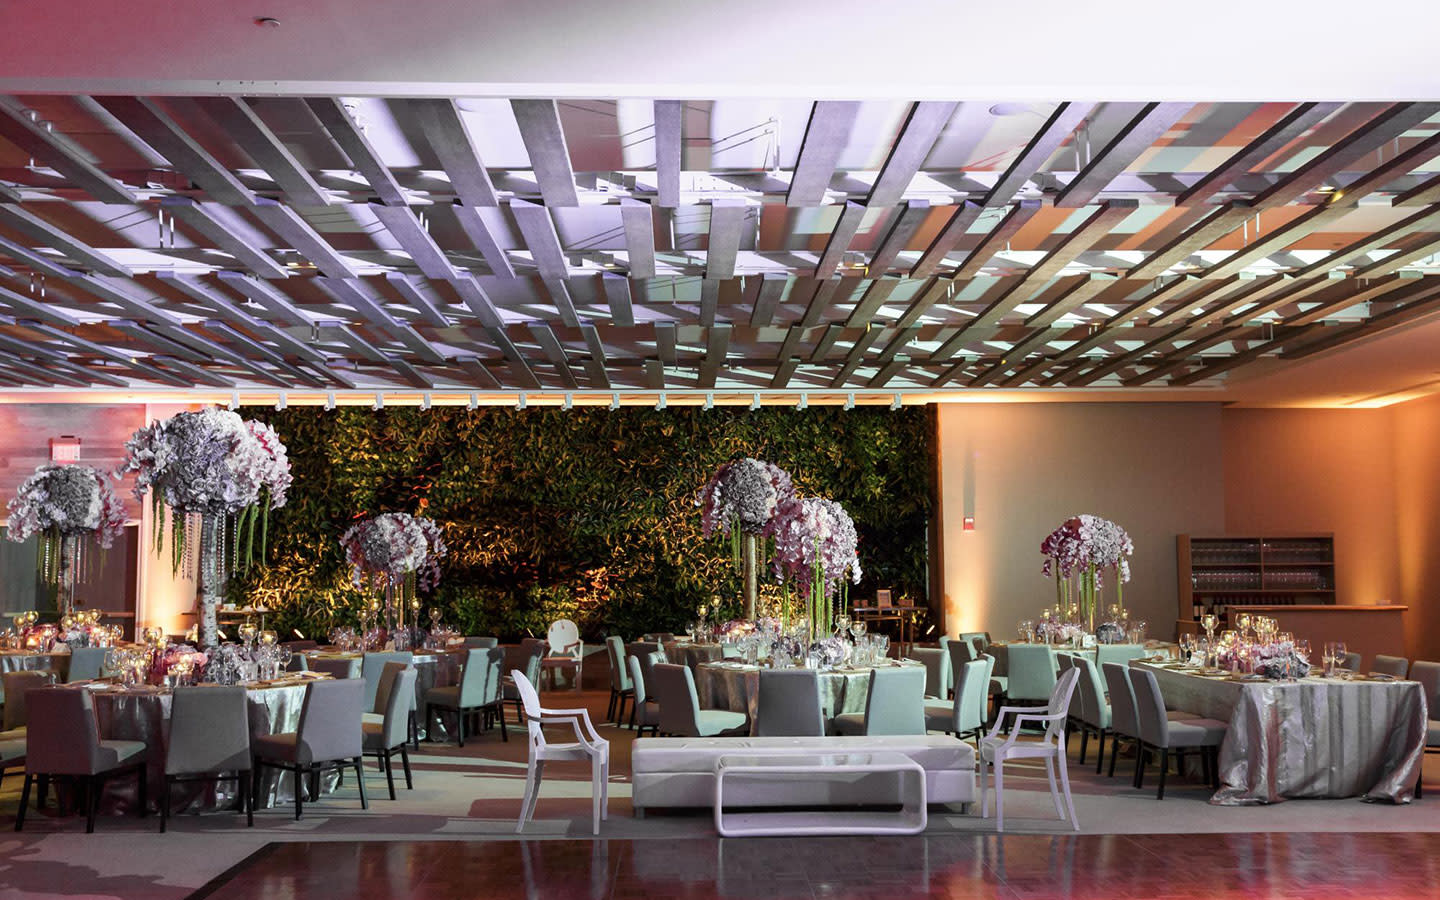 1 Hotel South Beach's Event Venue